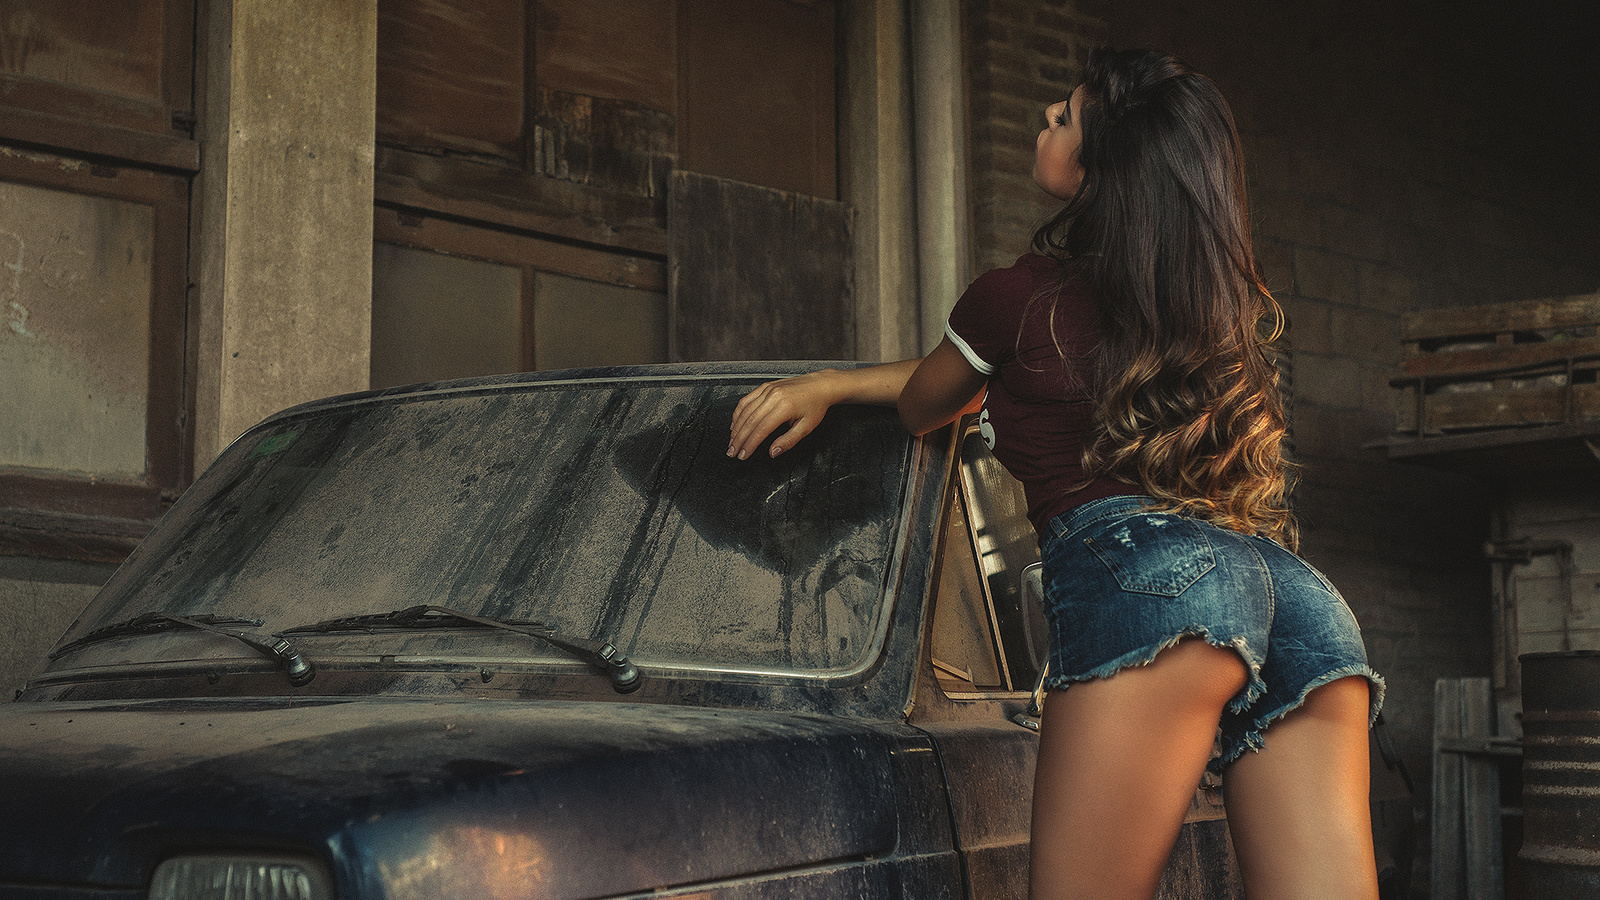 women, tanned, jean shorts, ass, women with cars, t-shirt, closed eyes, stockings, long hair